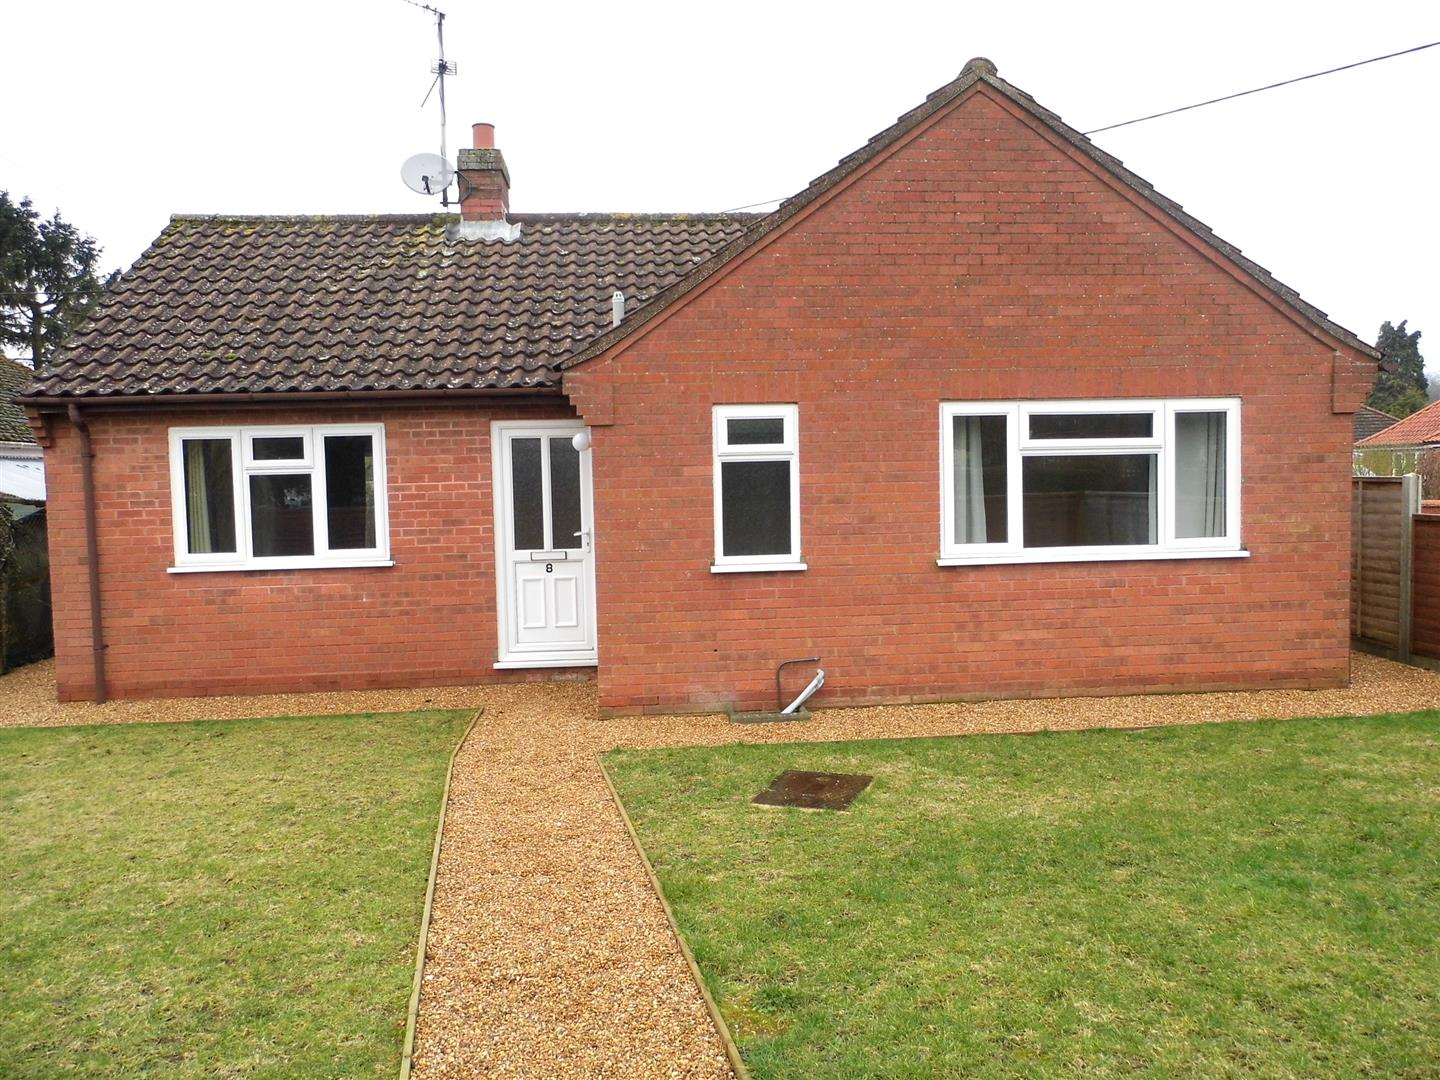 2 bed detached bungalow to rent in King's Lynn, PE31 6NH 0